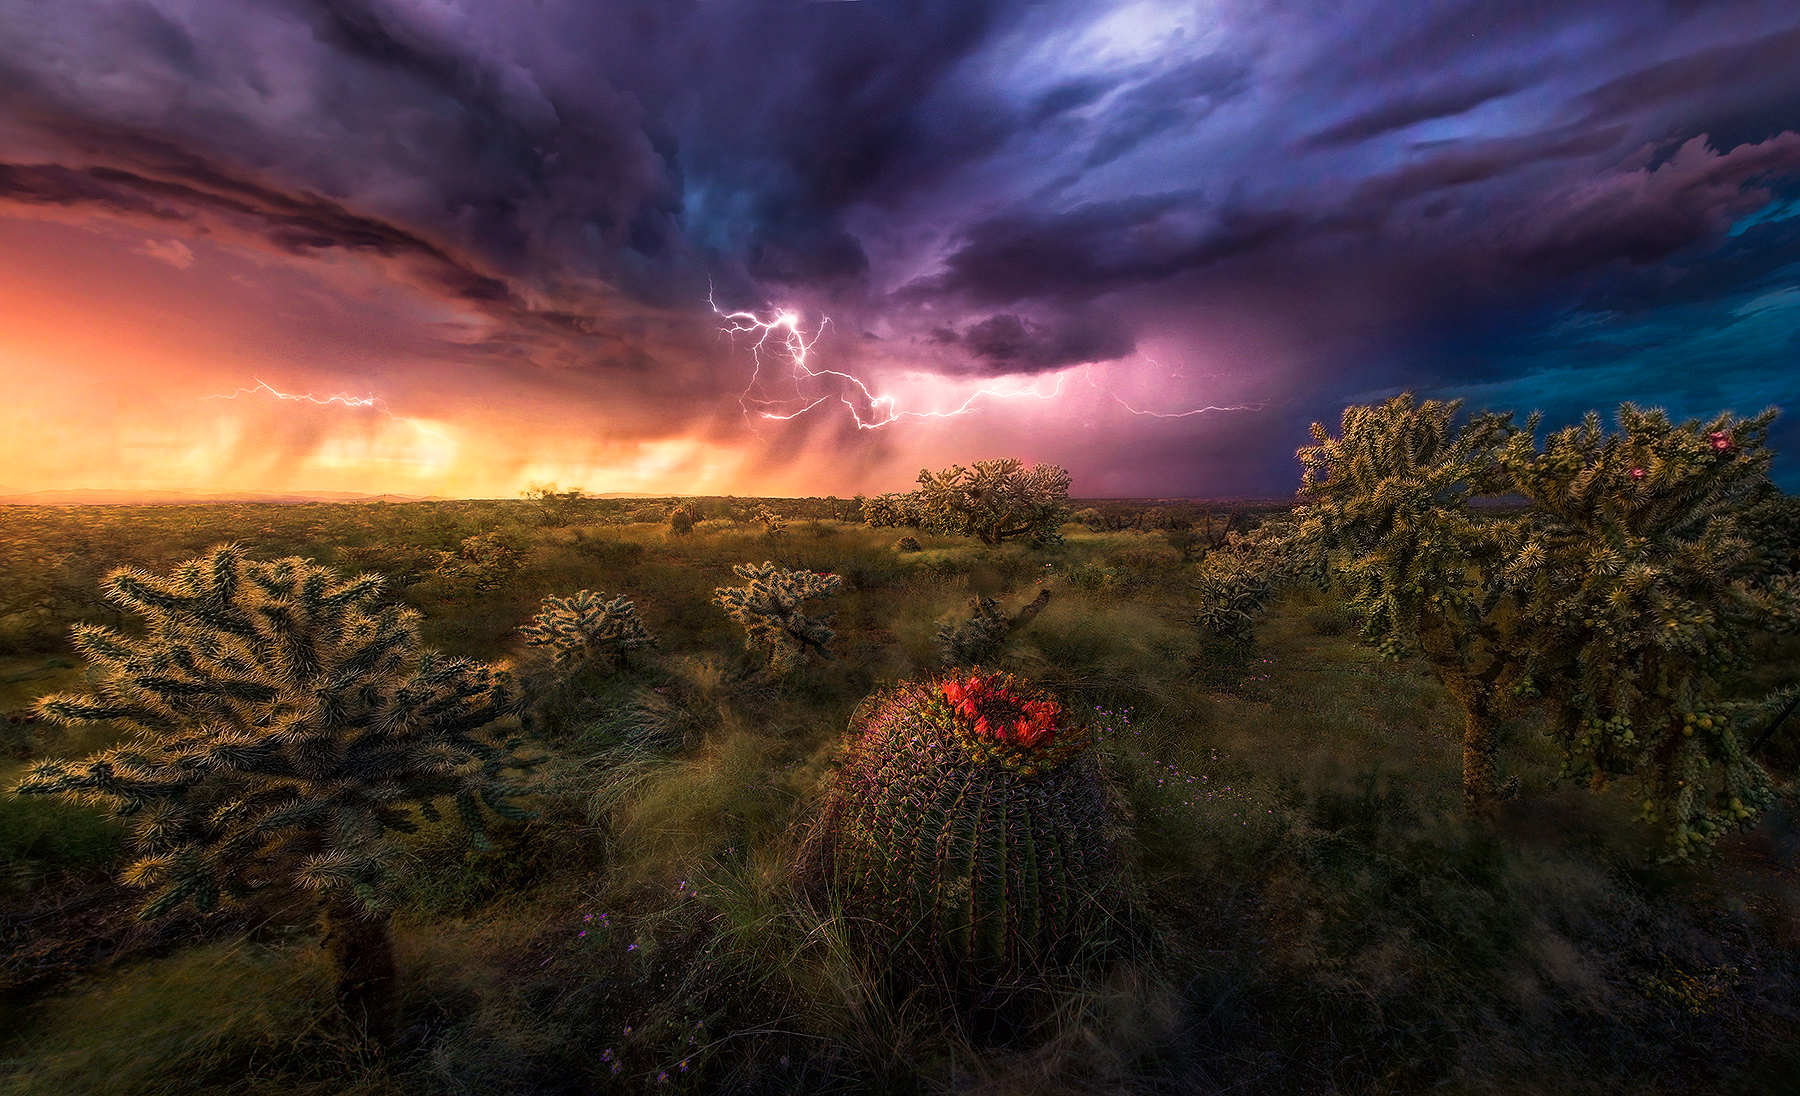 cactus, arizona, storm, lightning, Lemmon, photo